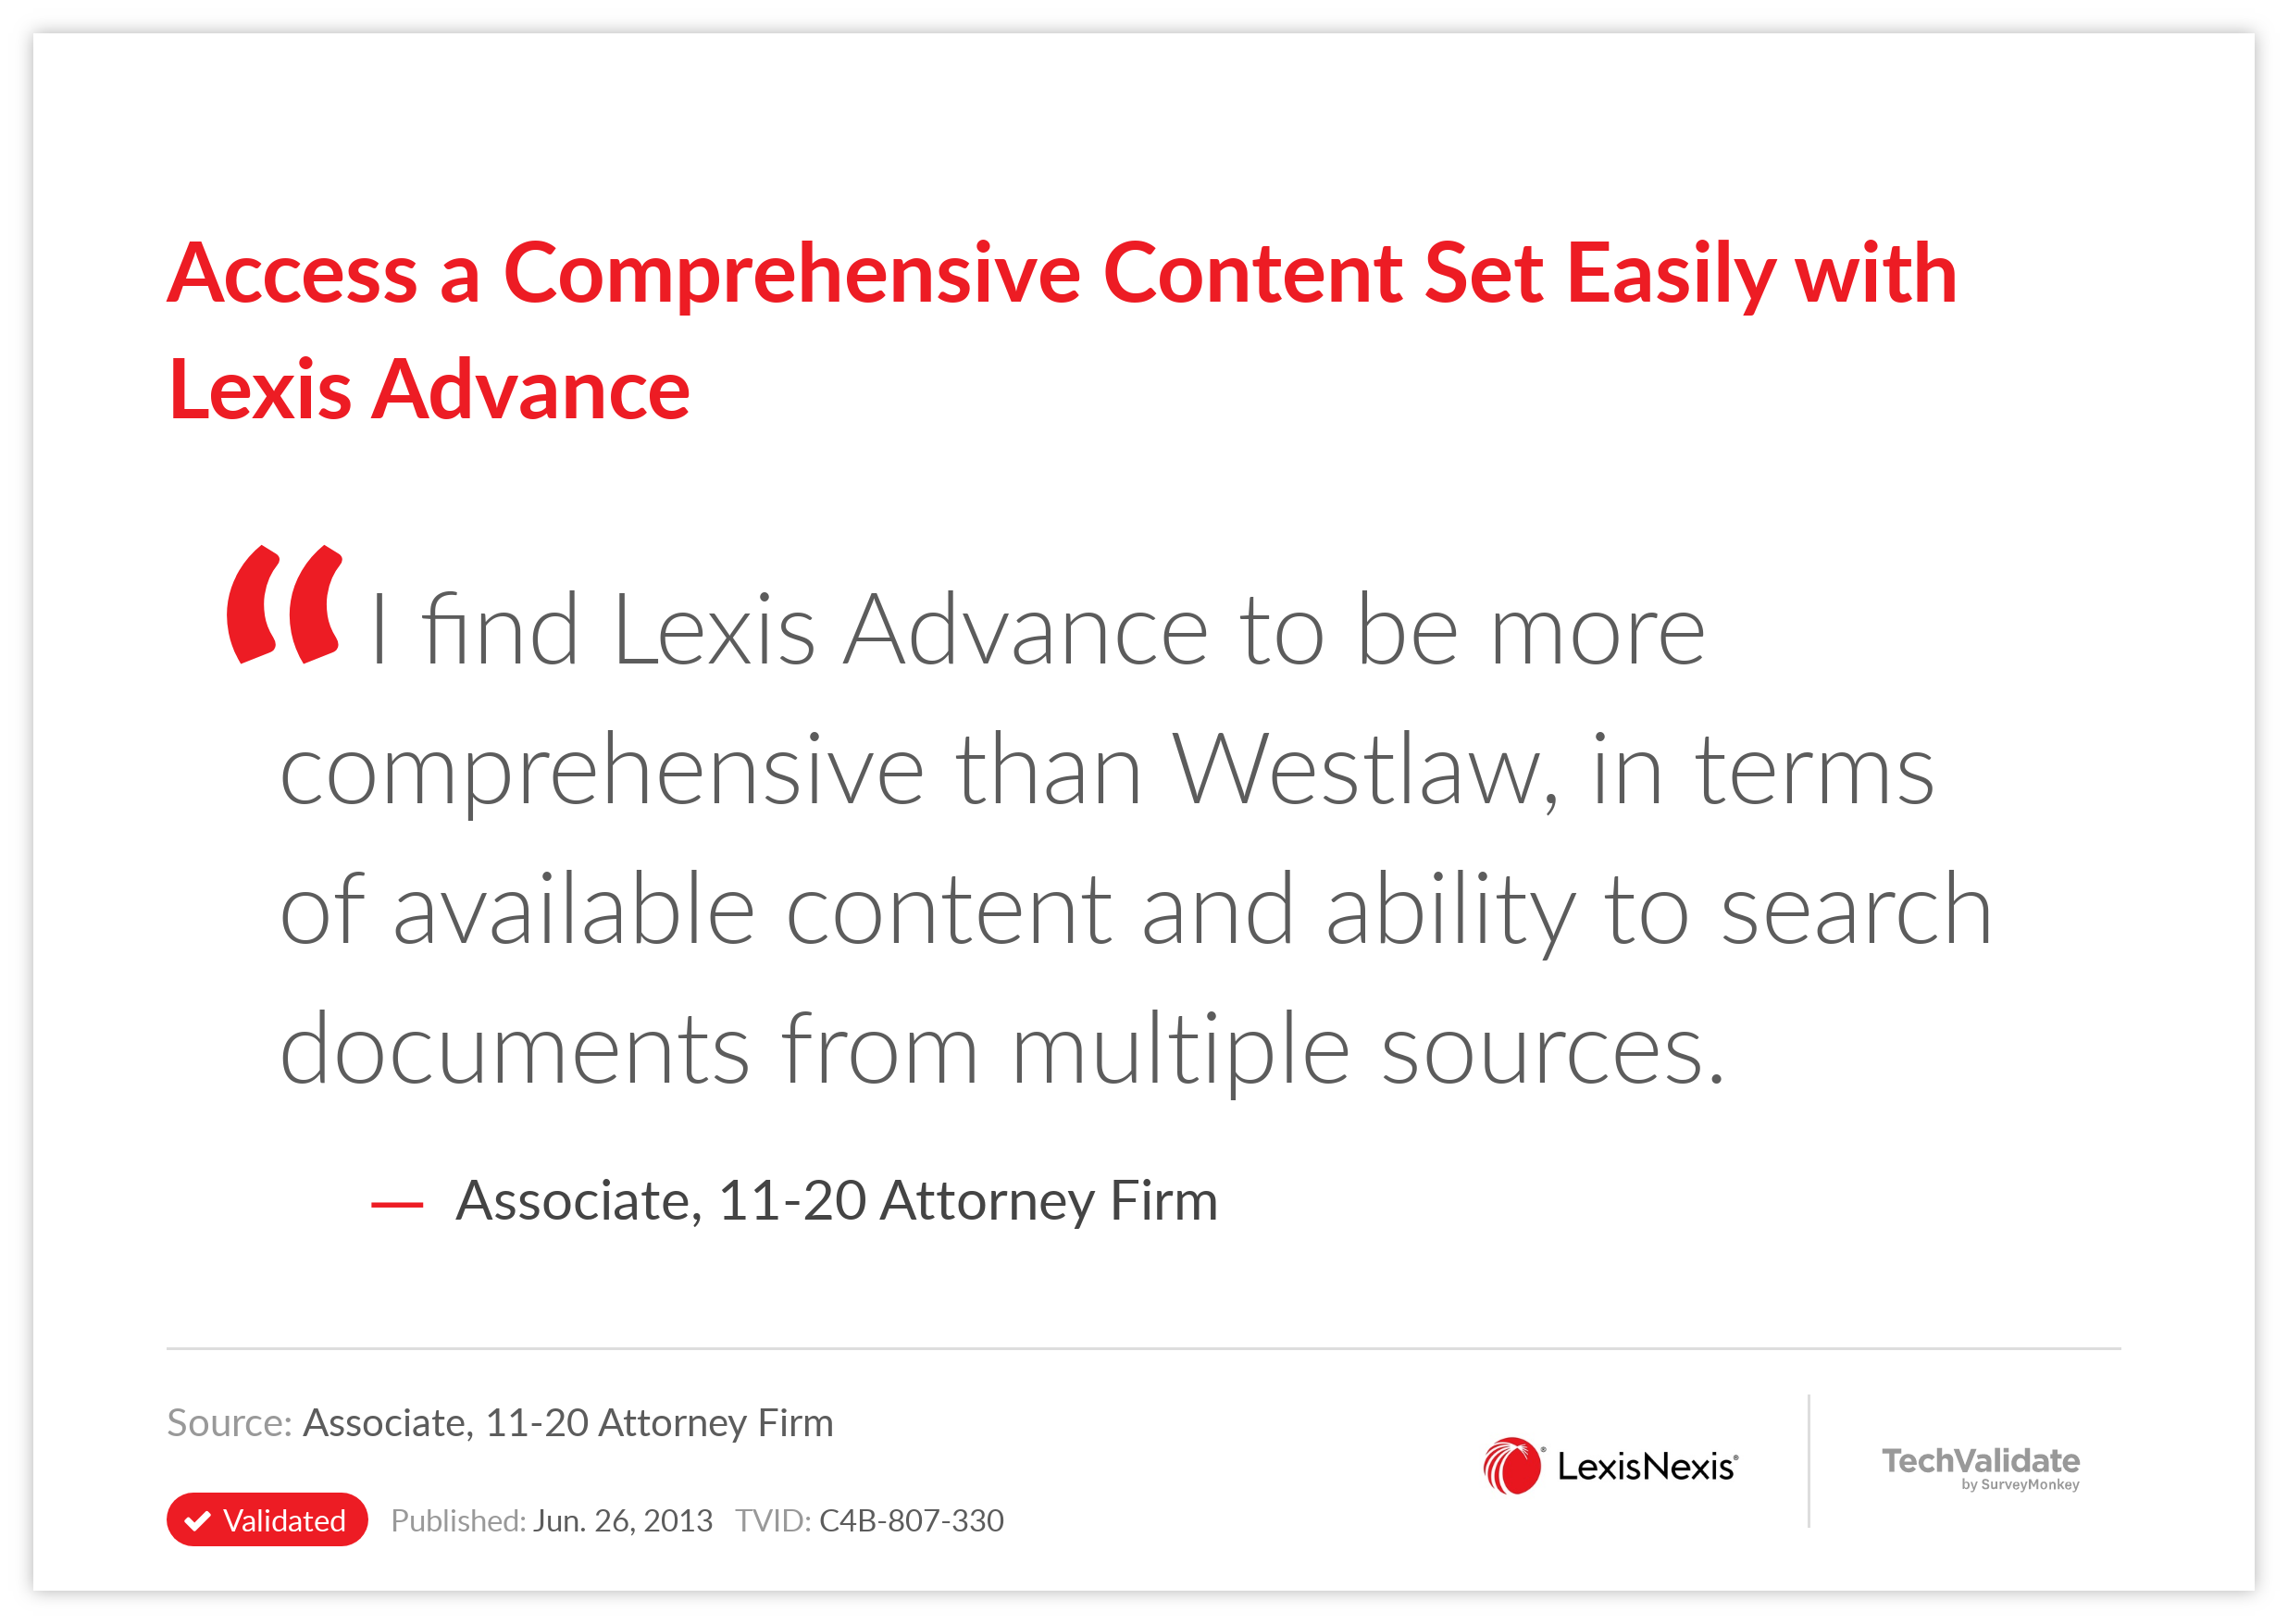 Access a Comprehensive Content Set Easily with Lexis Advance